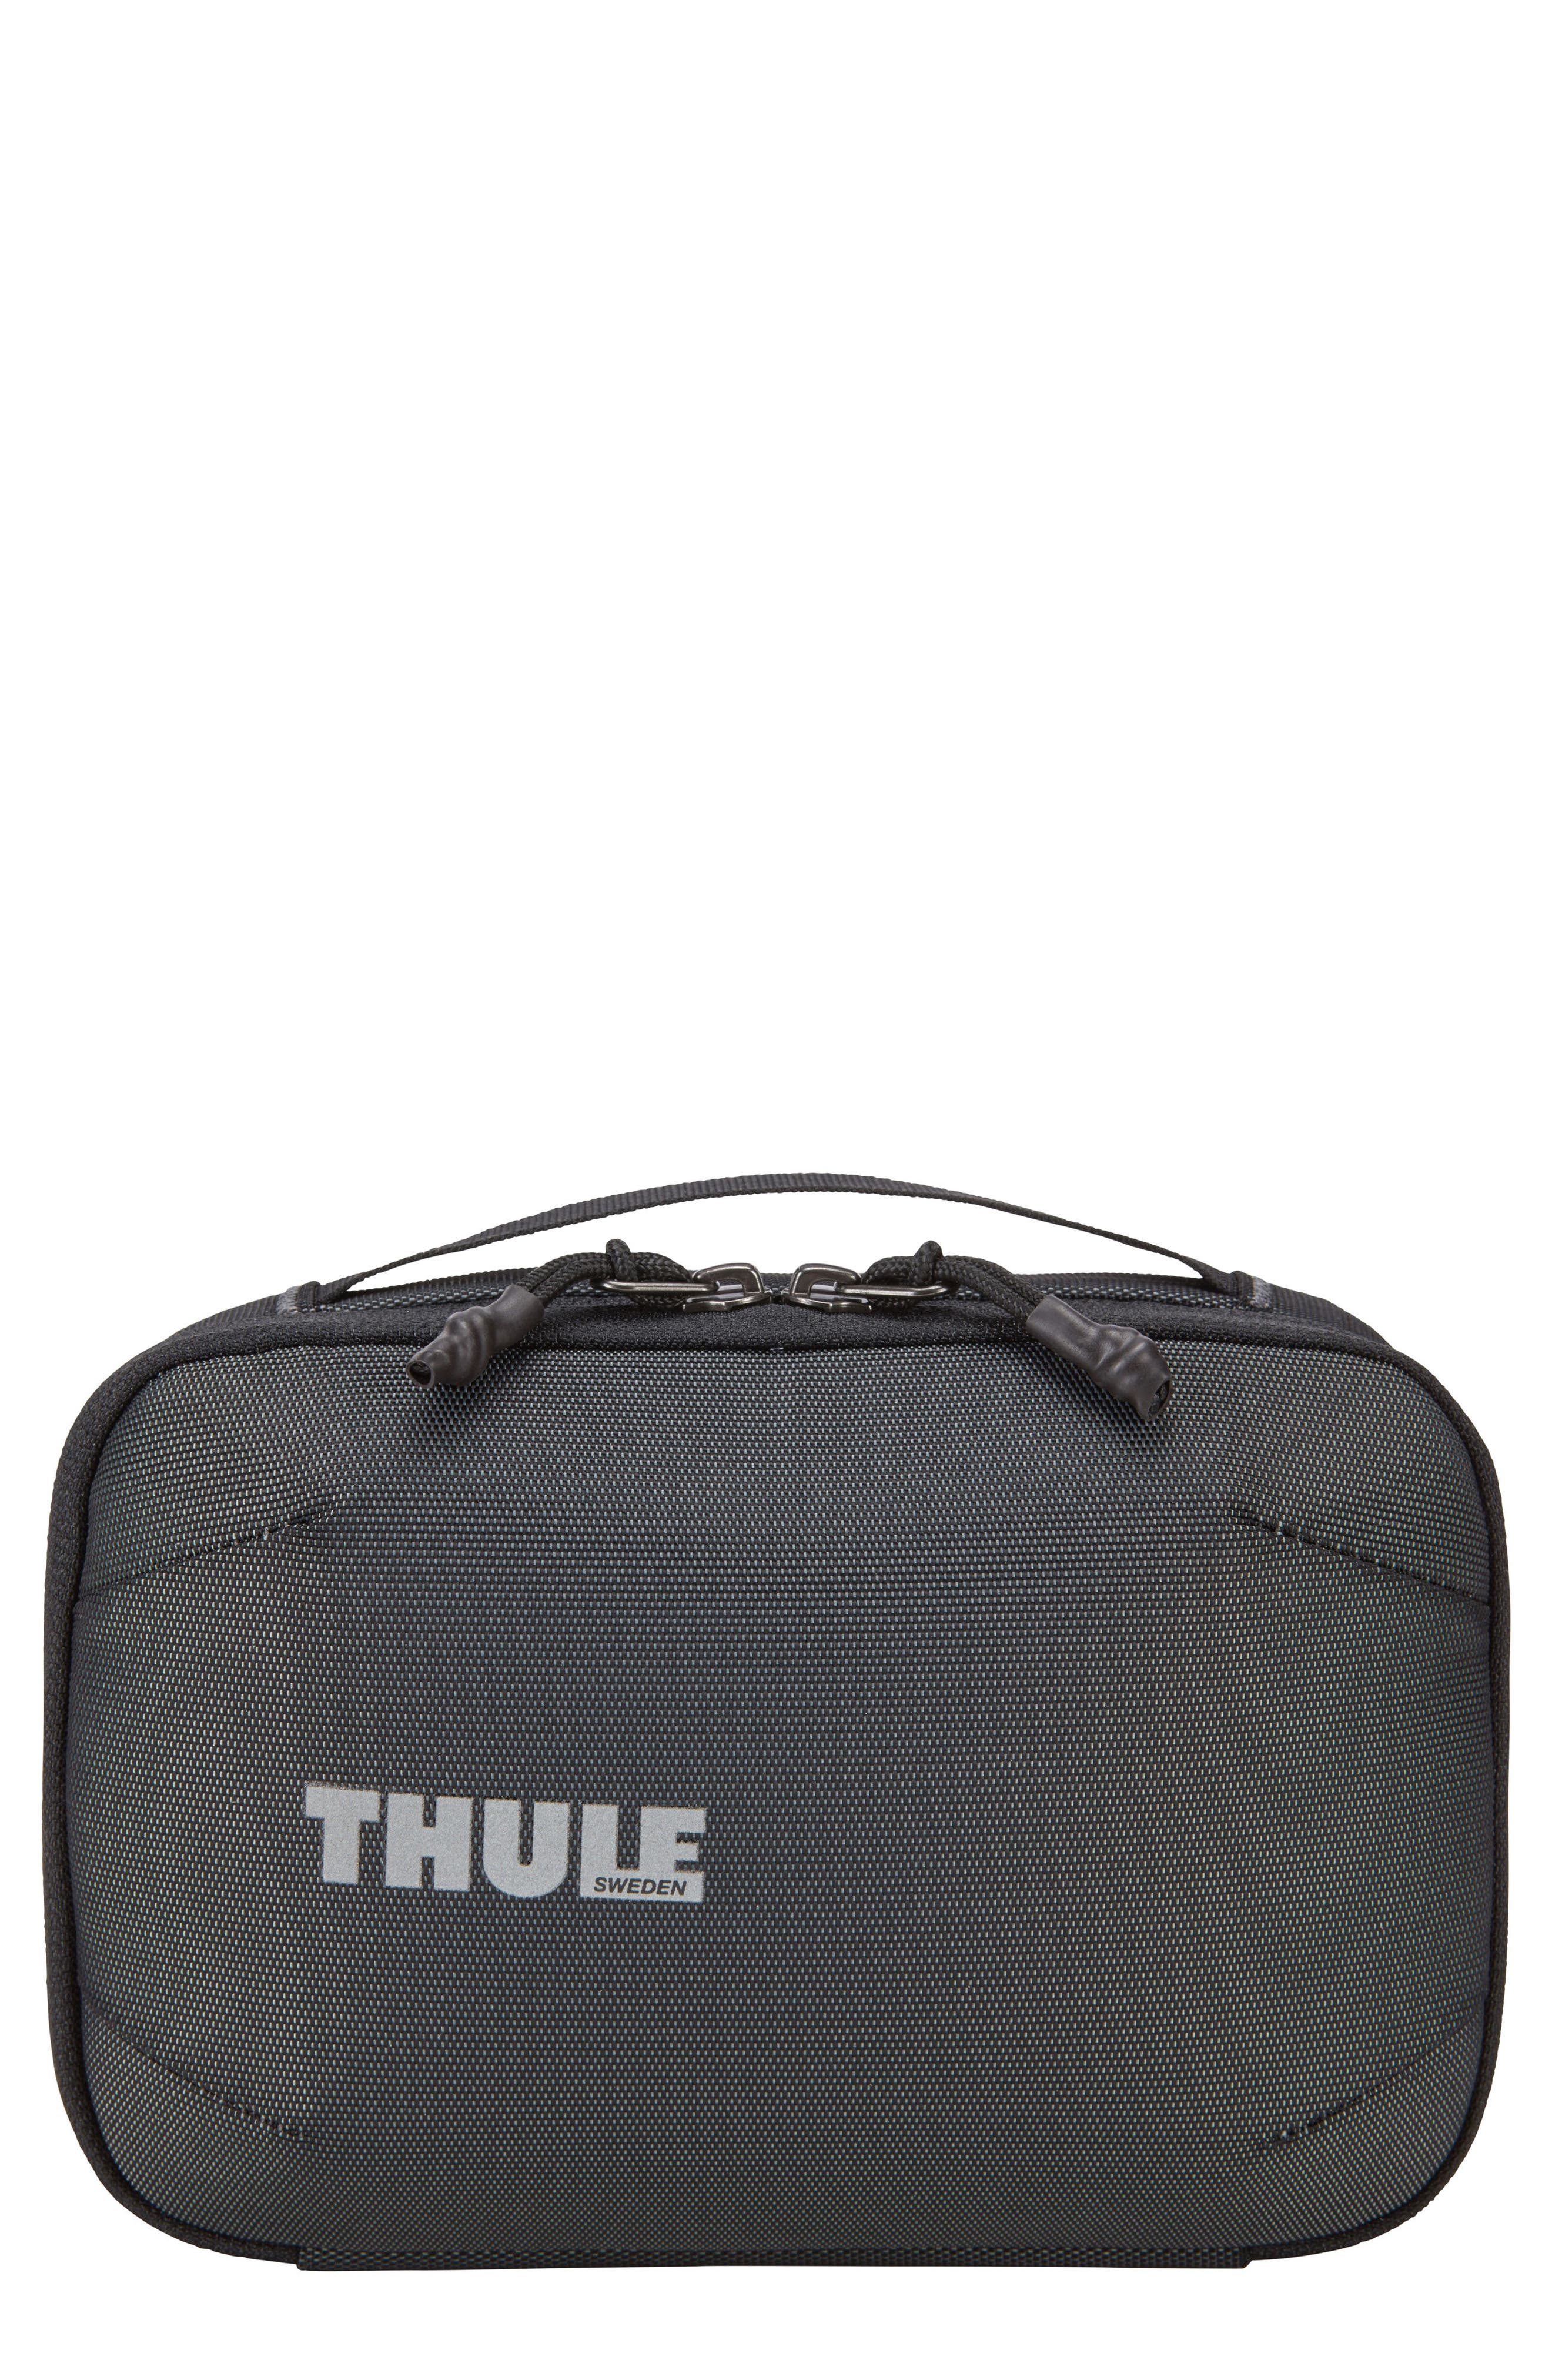 Thule Subterra Powershuttle Travel Case